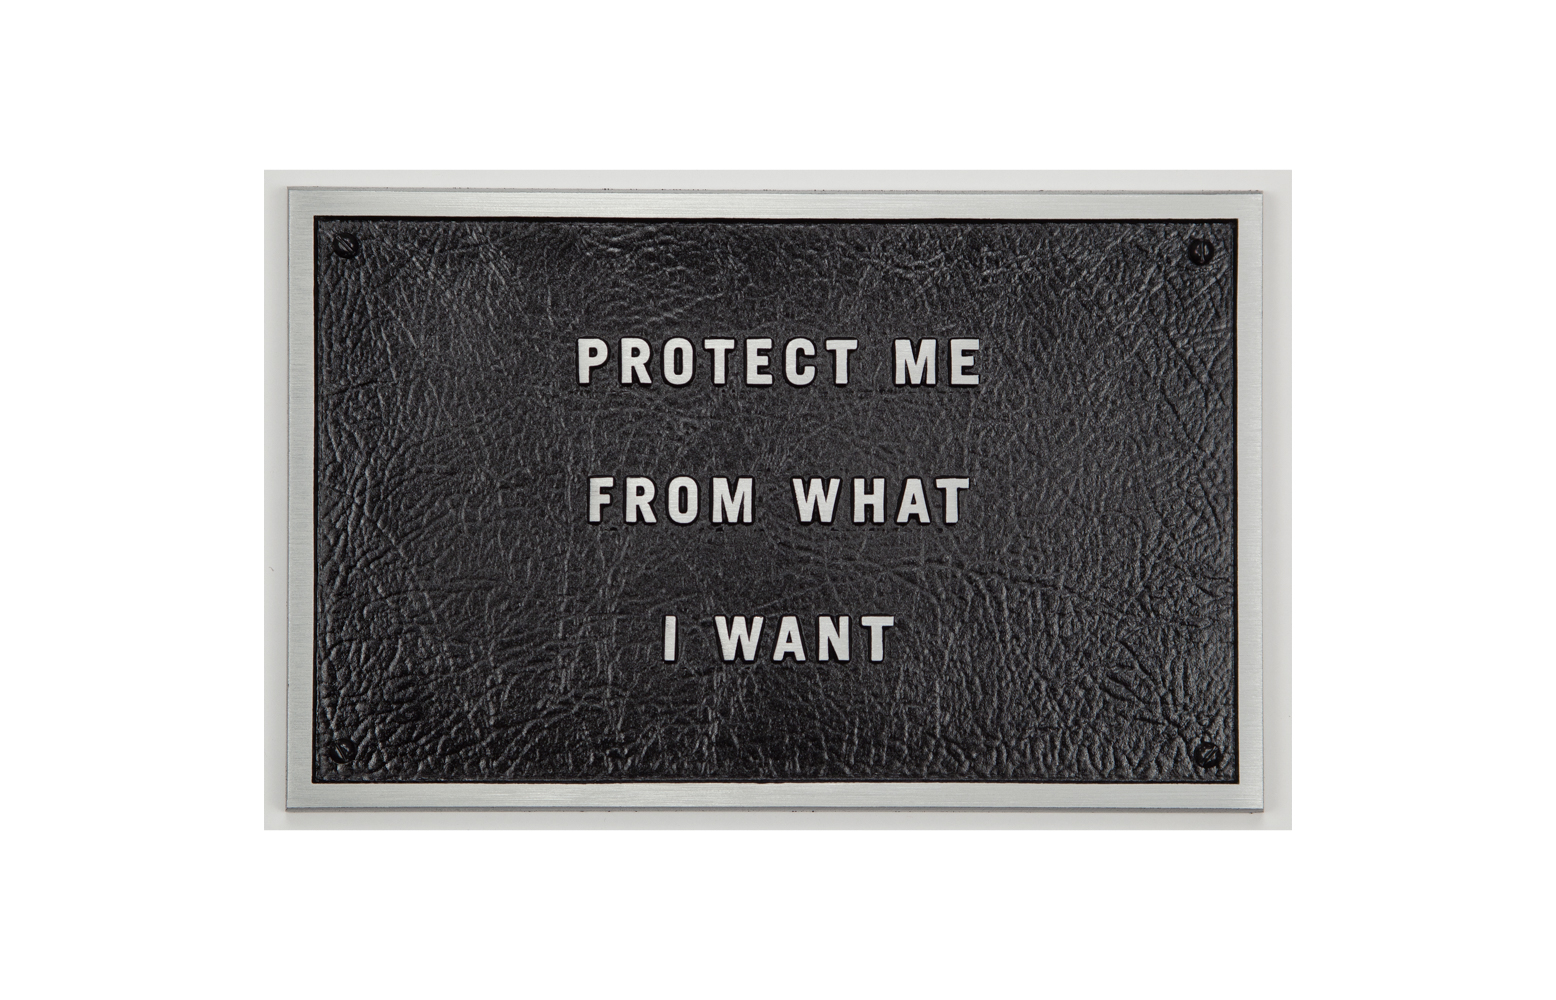 https://projects.jennyholzer.com/uploads/project/image/attachment/1718/JH110_D4_00_01-2.jpg